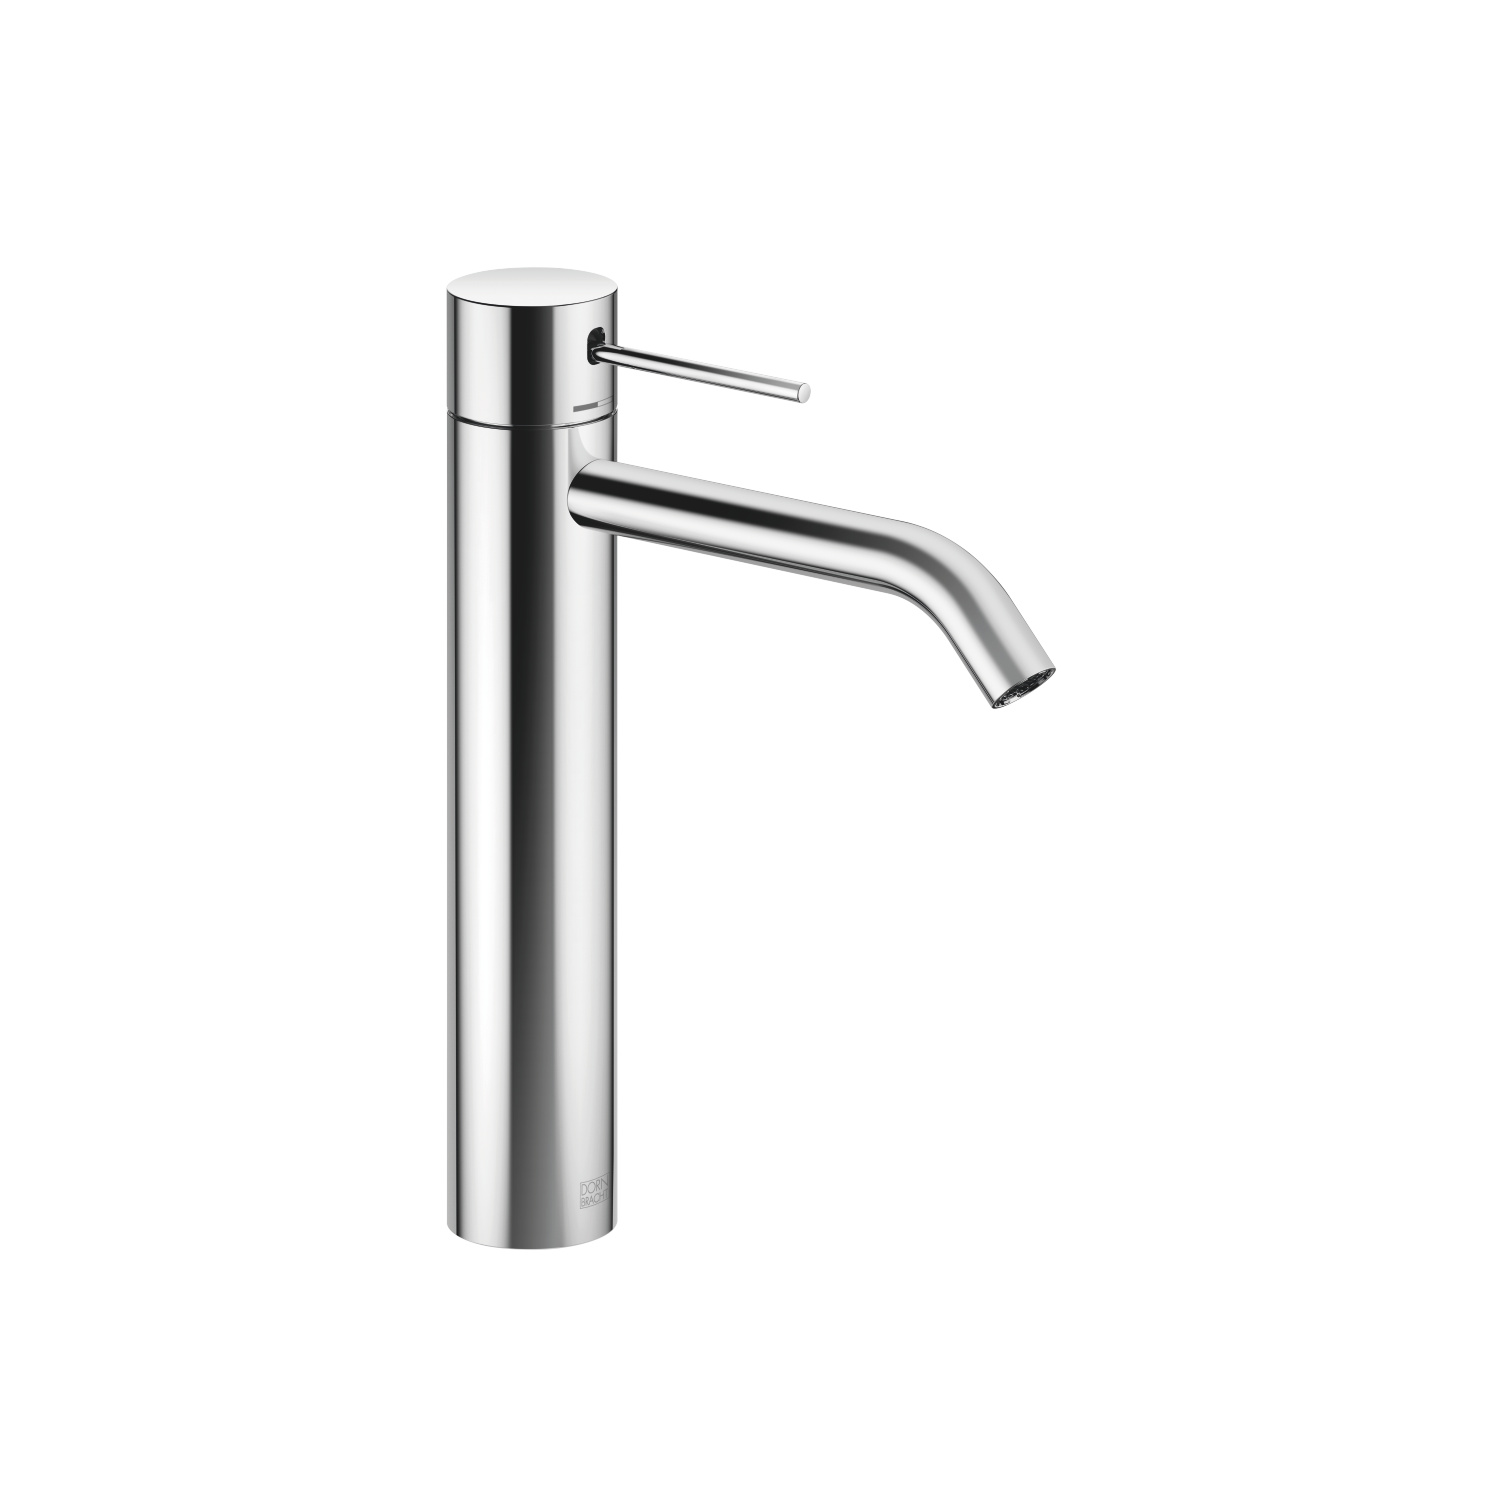 META SLIM Single-lever basin mixer with raised base without pop-up waste - polished chrome - 33 539 662-00